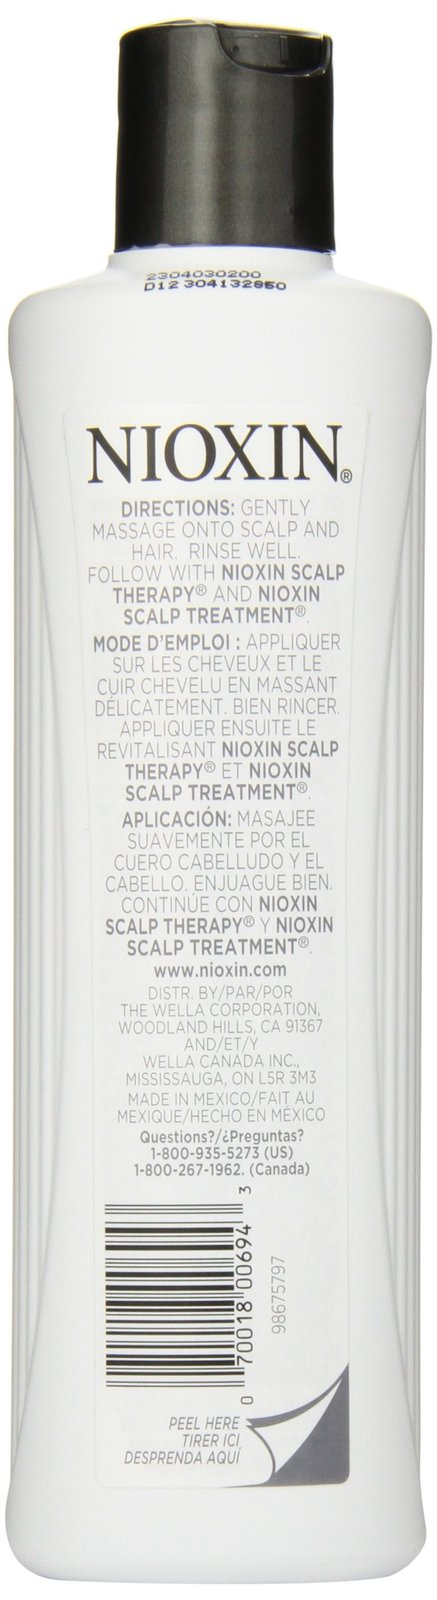 Nioxin Cleanser, System 1, Fine/Untreated/Normal to Thin-Looking, 10.1 Ounce